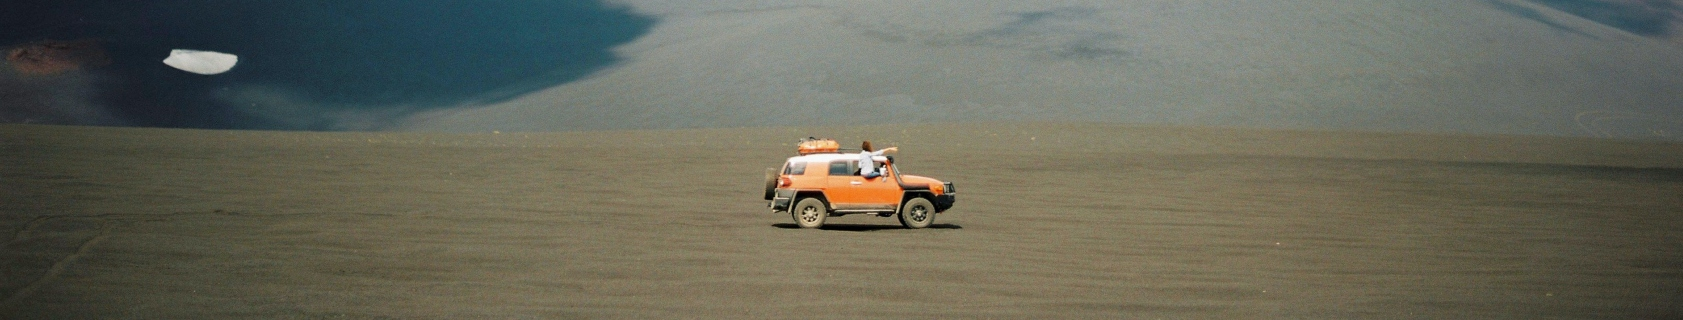 Orange SUV in the desert